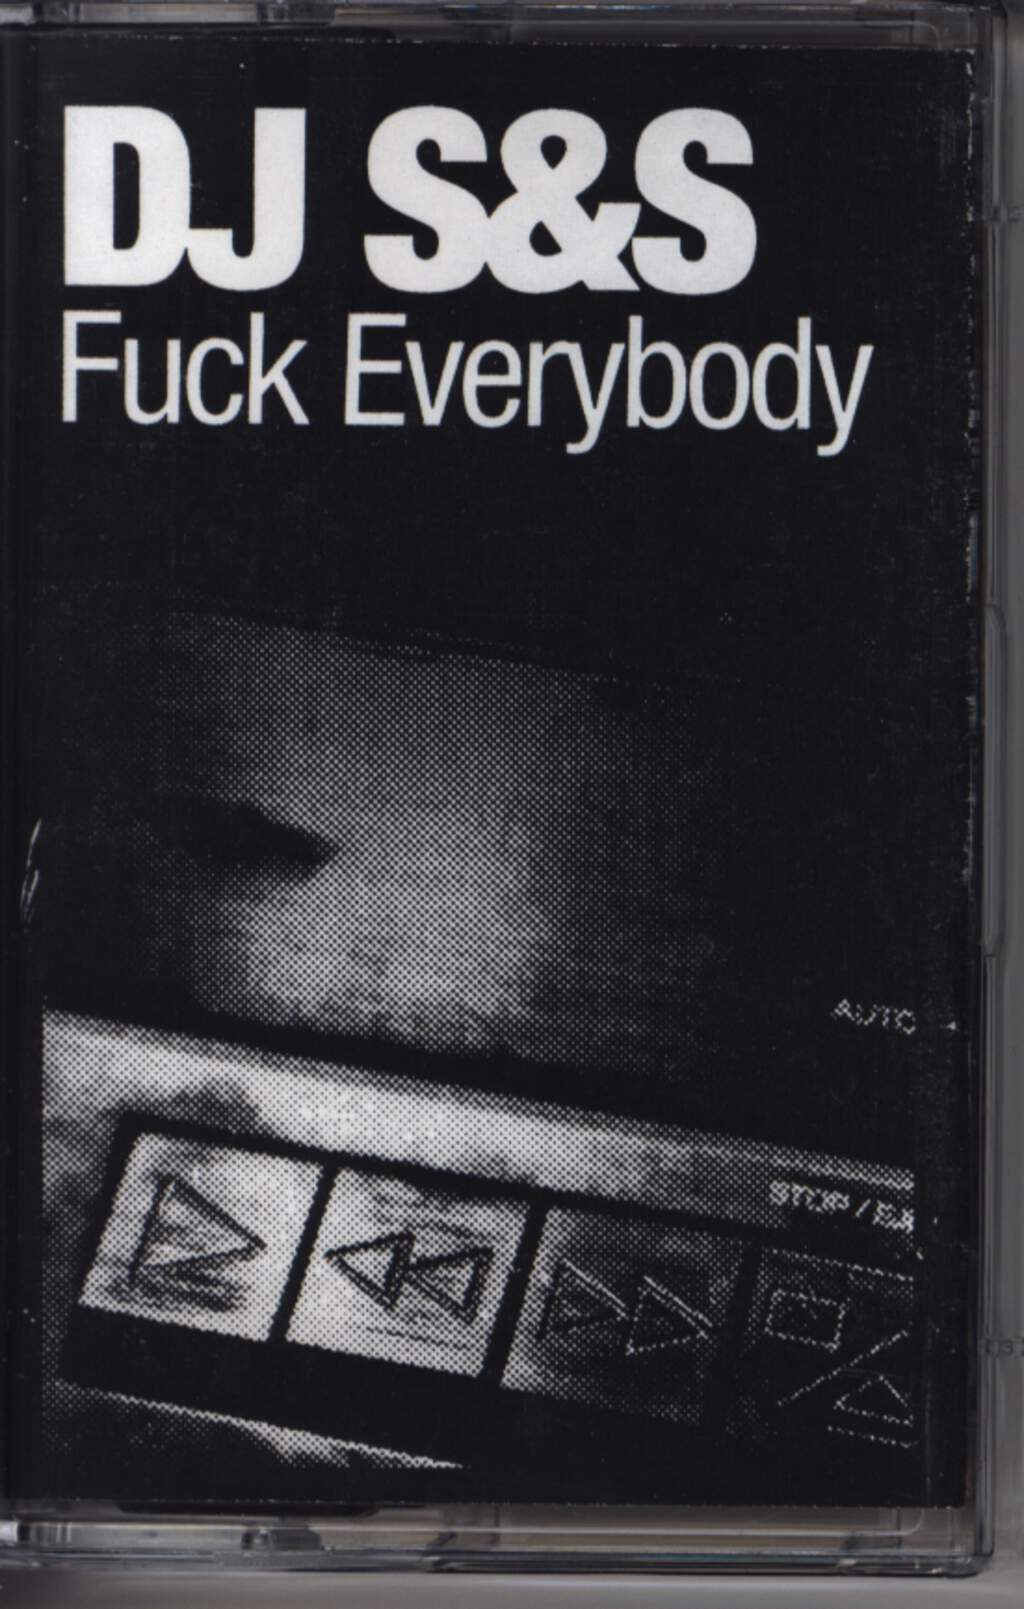 DJ S & S: Fuck Everybody, Compact Cassette